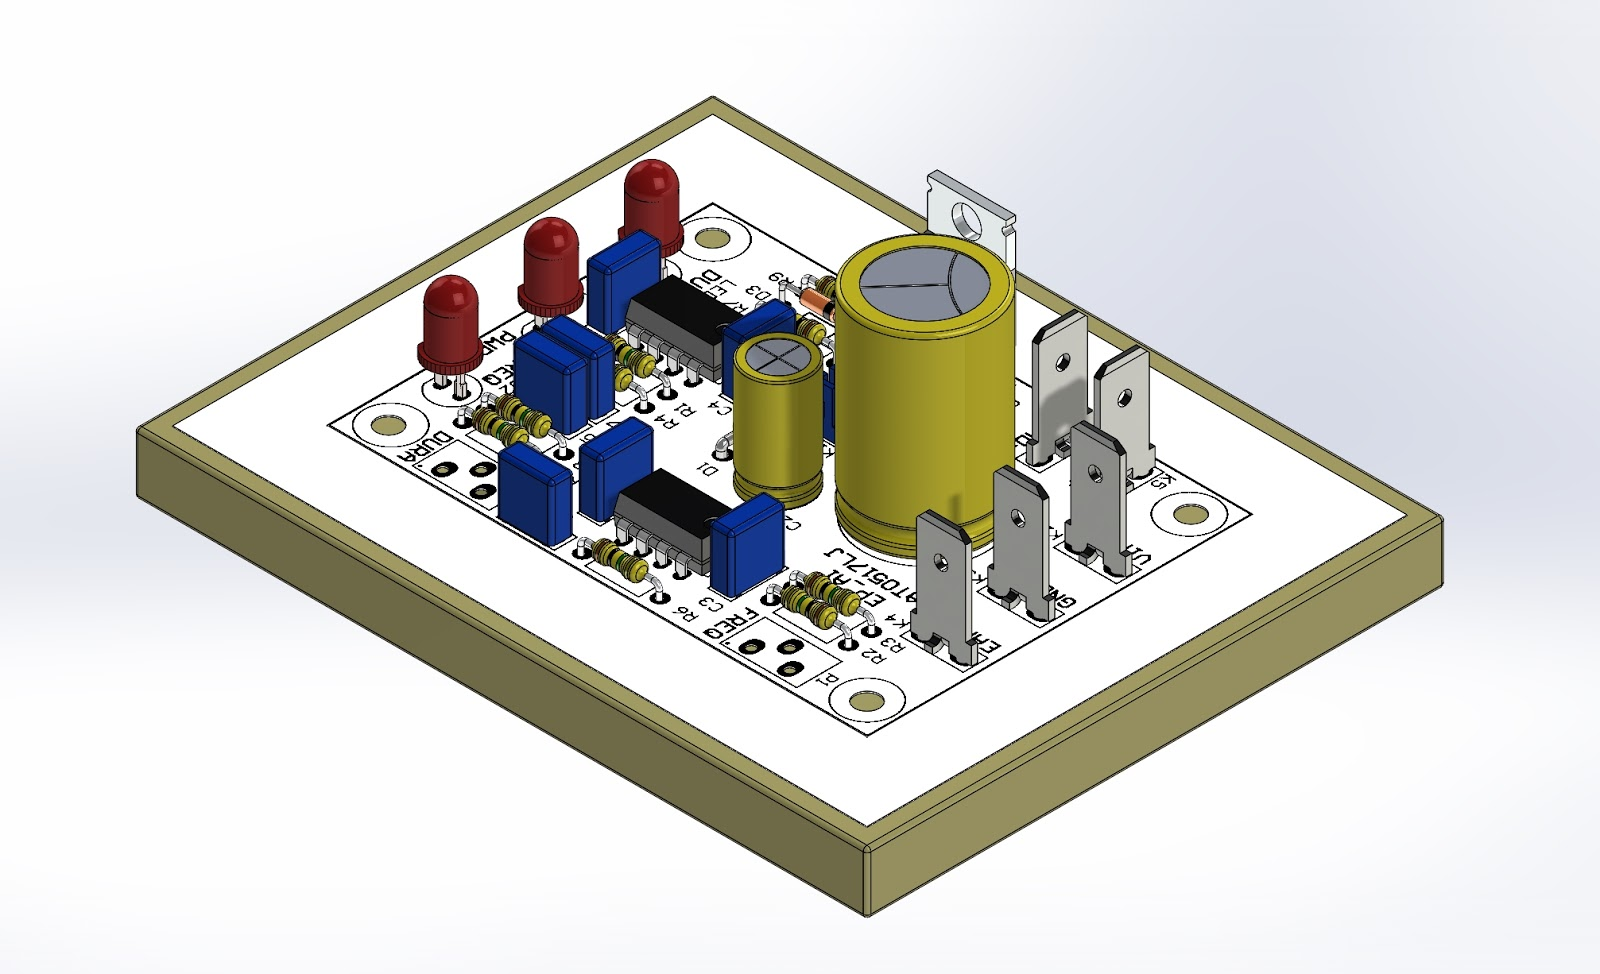 A 3D view of a through hole (THT) PCB for an audio amplifier.